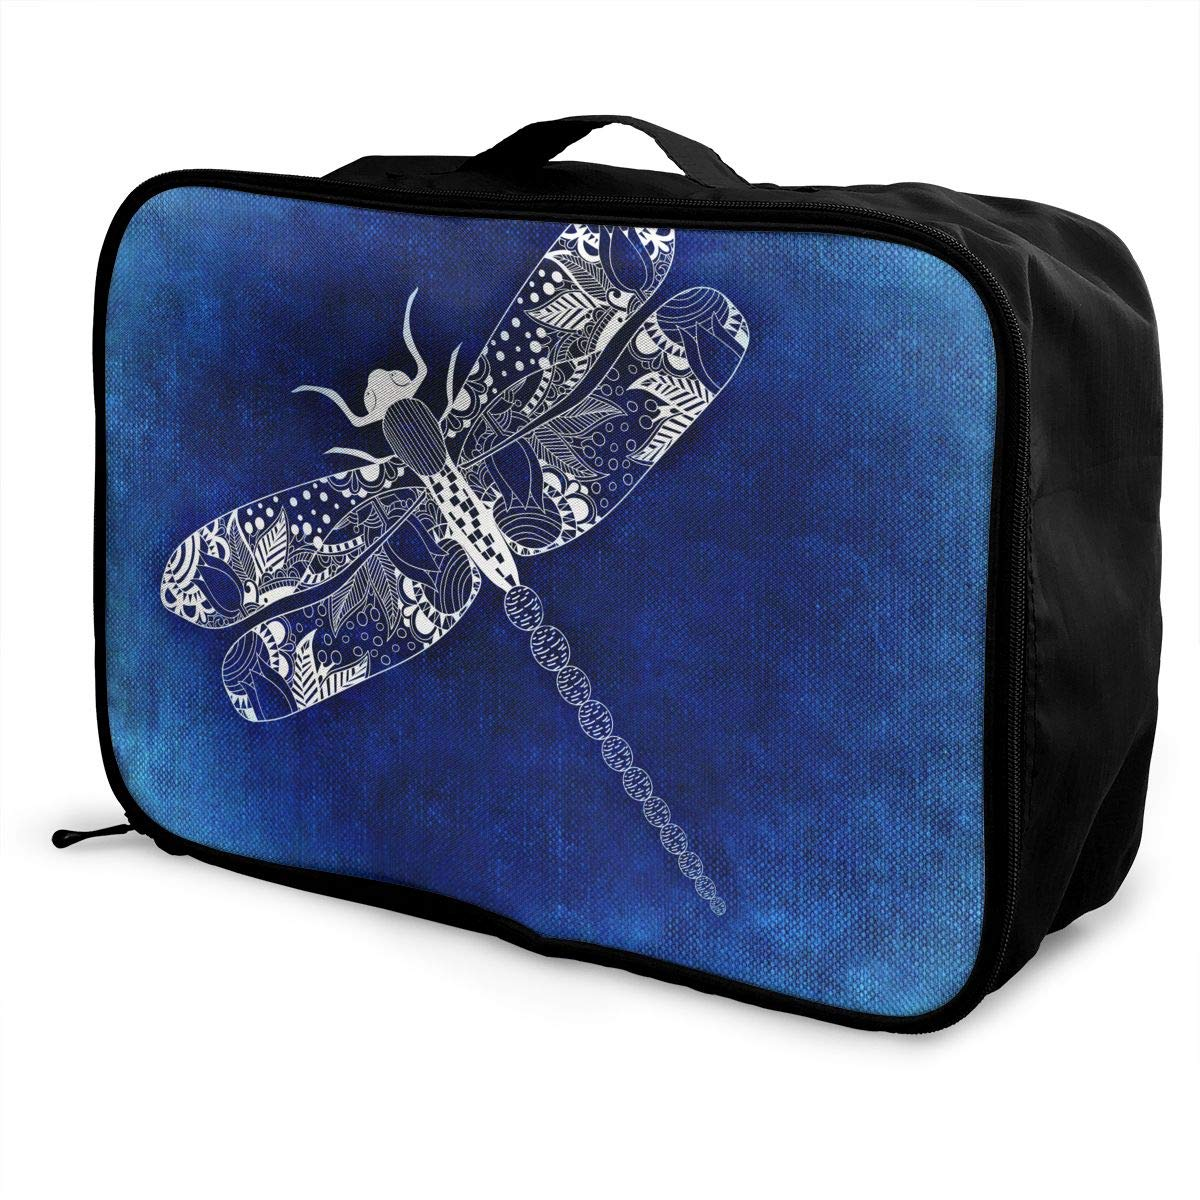 ADGAI Dragonfly in The Blue Sea Canvas Travel Weekender Bag,Fashion Custom Lightweight Large Capacity Portable Luggage Bag,Suitcase Trolley Bag